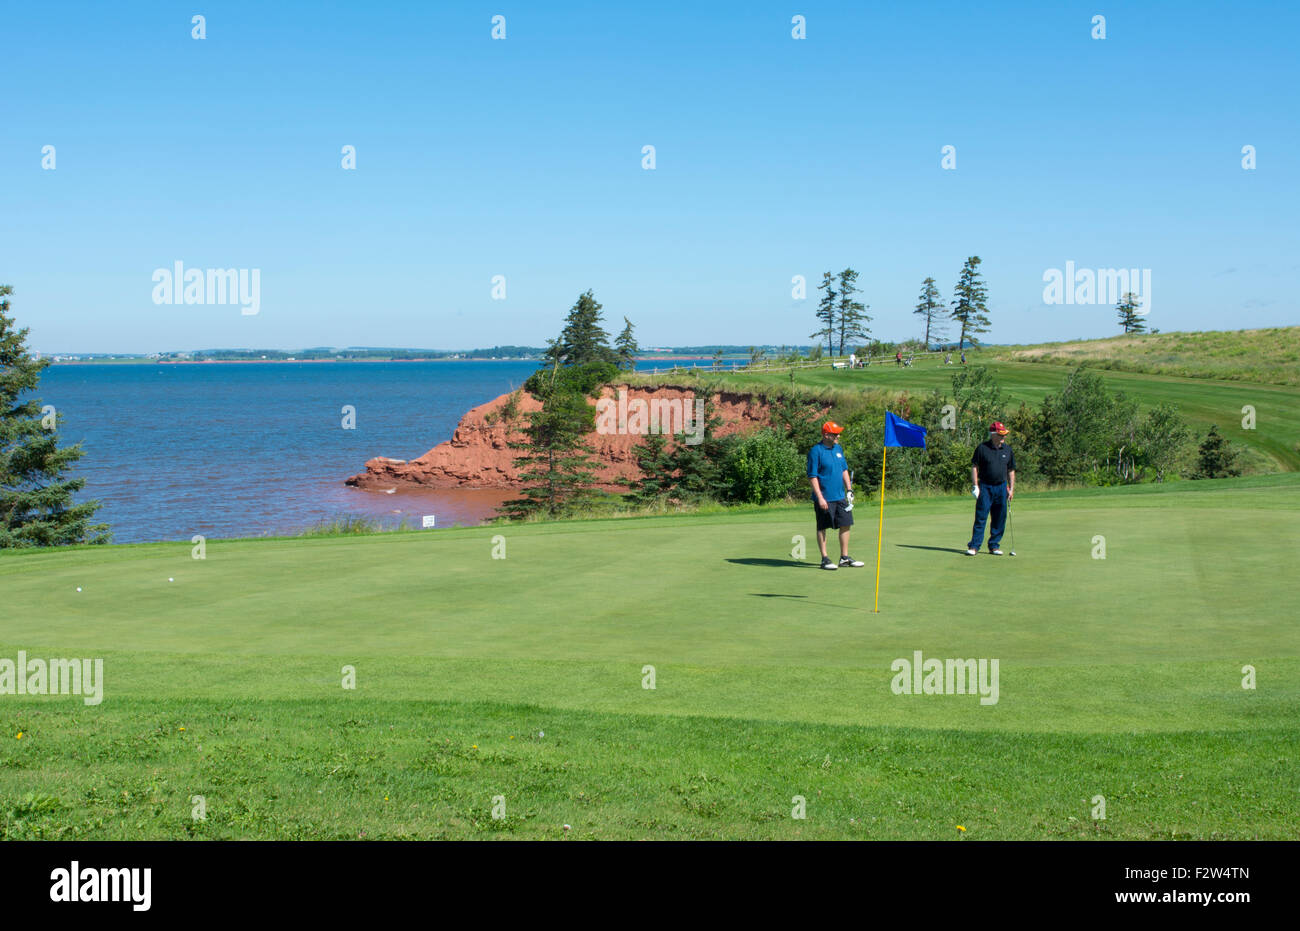 Canada Prince Edward Island, P.E.I. golfing at Belfast Highland Greens near ocean with cliff and golfers - Stock Image